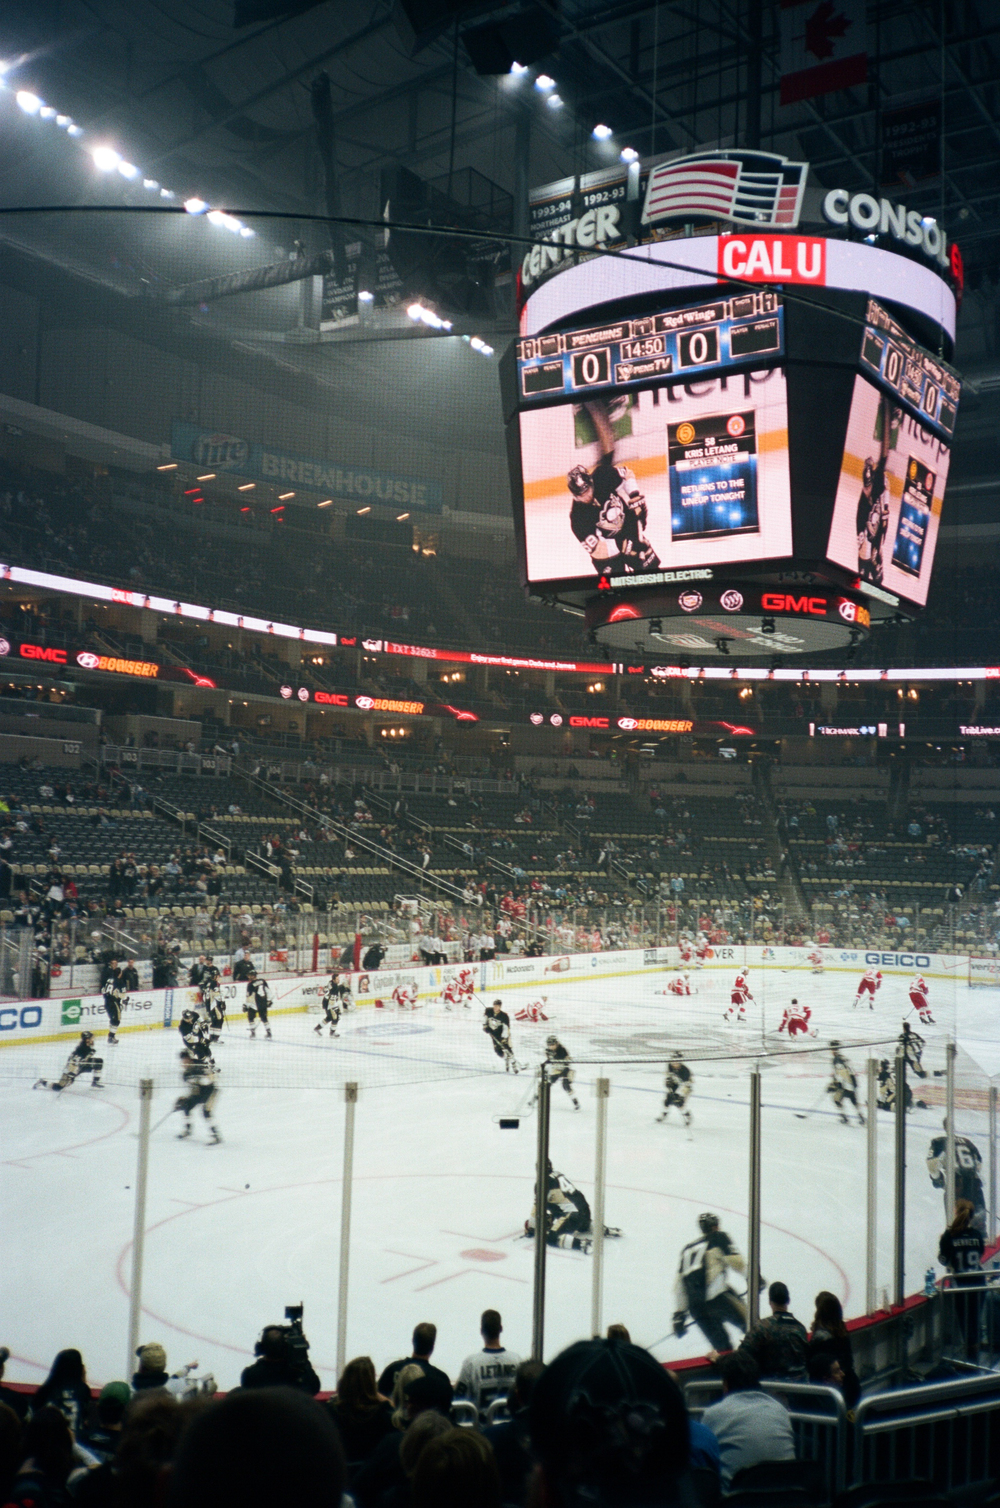 Hockey-Night-In-Pittsburgh-Film-Photography-Karlsson-013.jpg